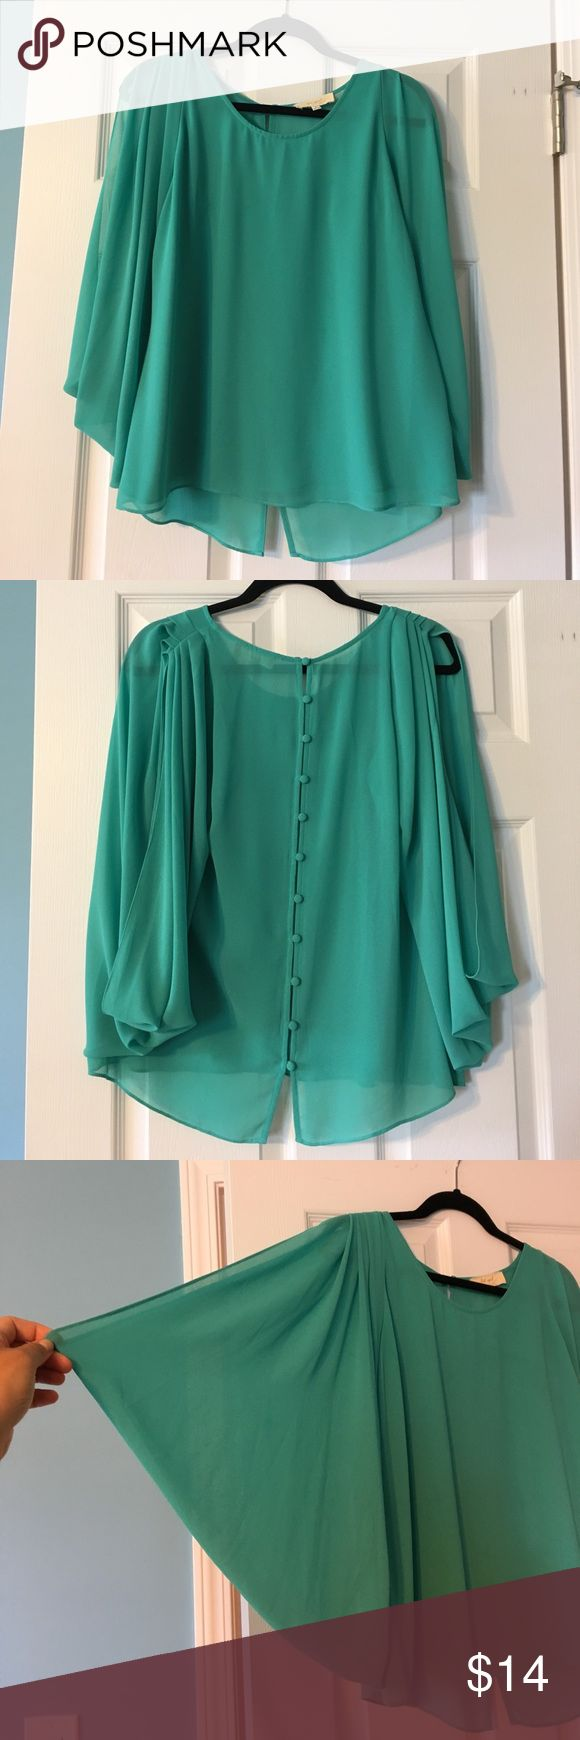 Turquoise blouse Super cute open-sleeve turquoise blouse. Like New; worn two times. No imperfections of any kind. lost april Tops Blouses